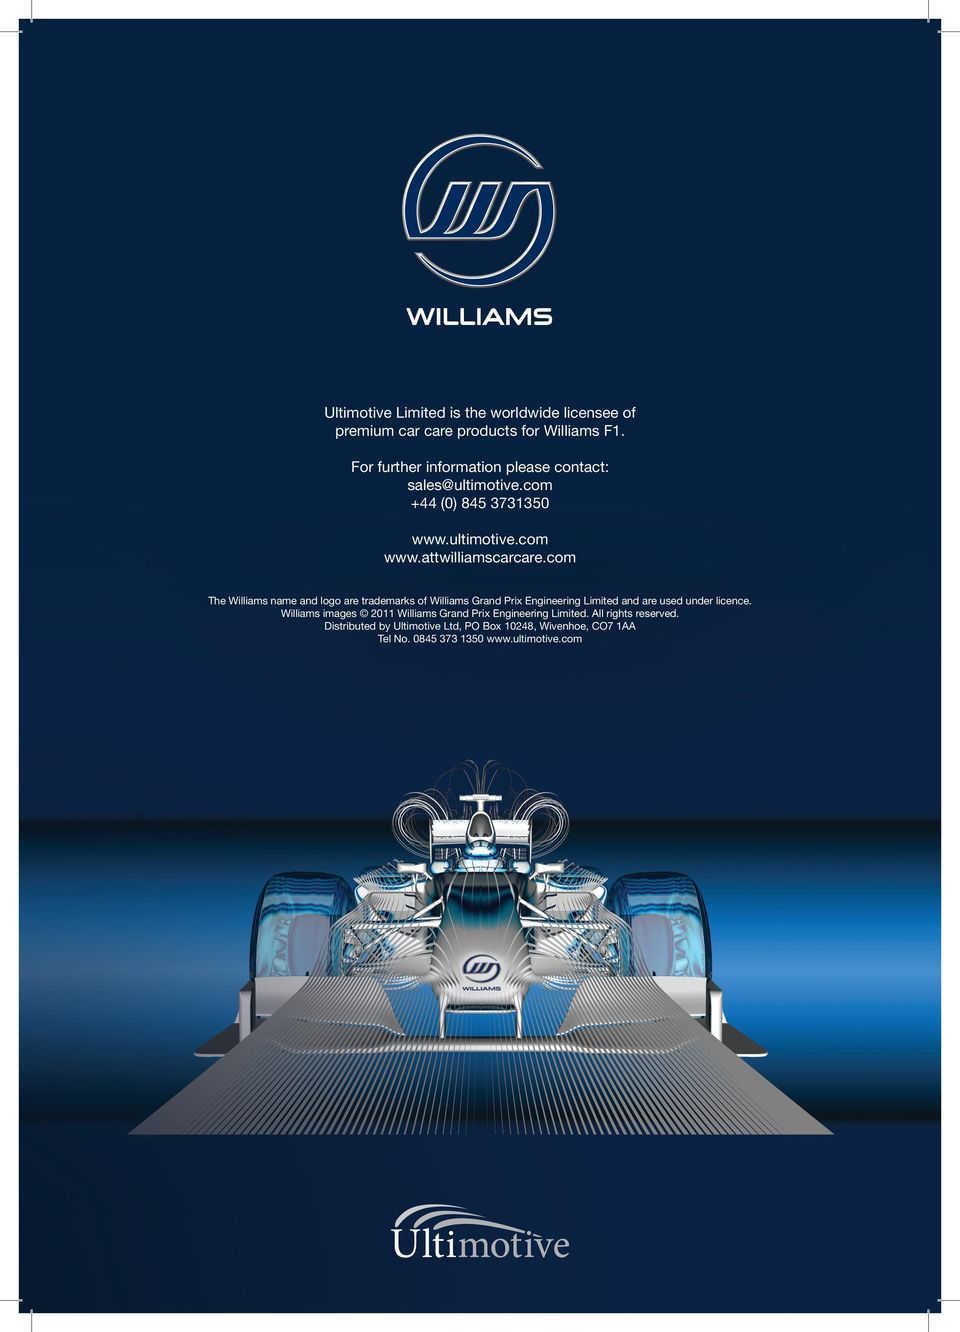 com The Williams name and logo are trademarks of Williams Grand Prix Engineering Limited and are used under licence.